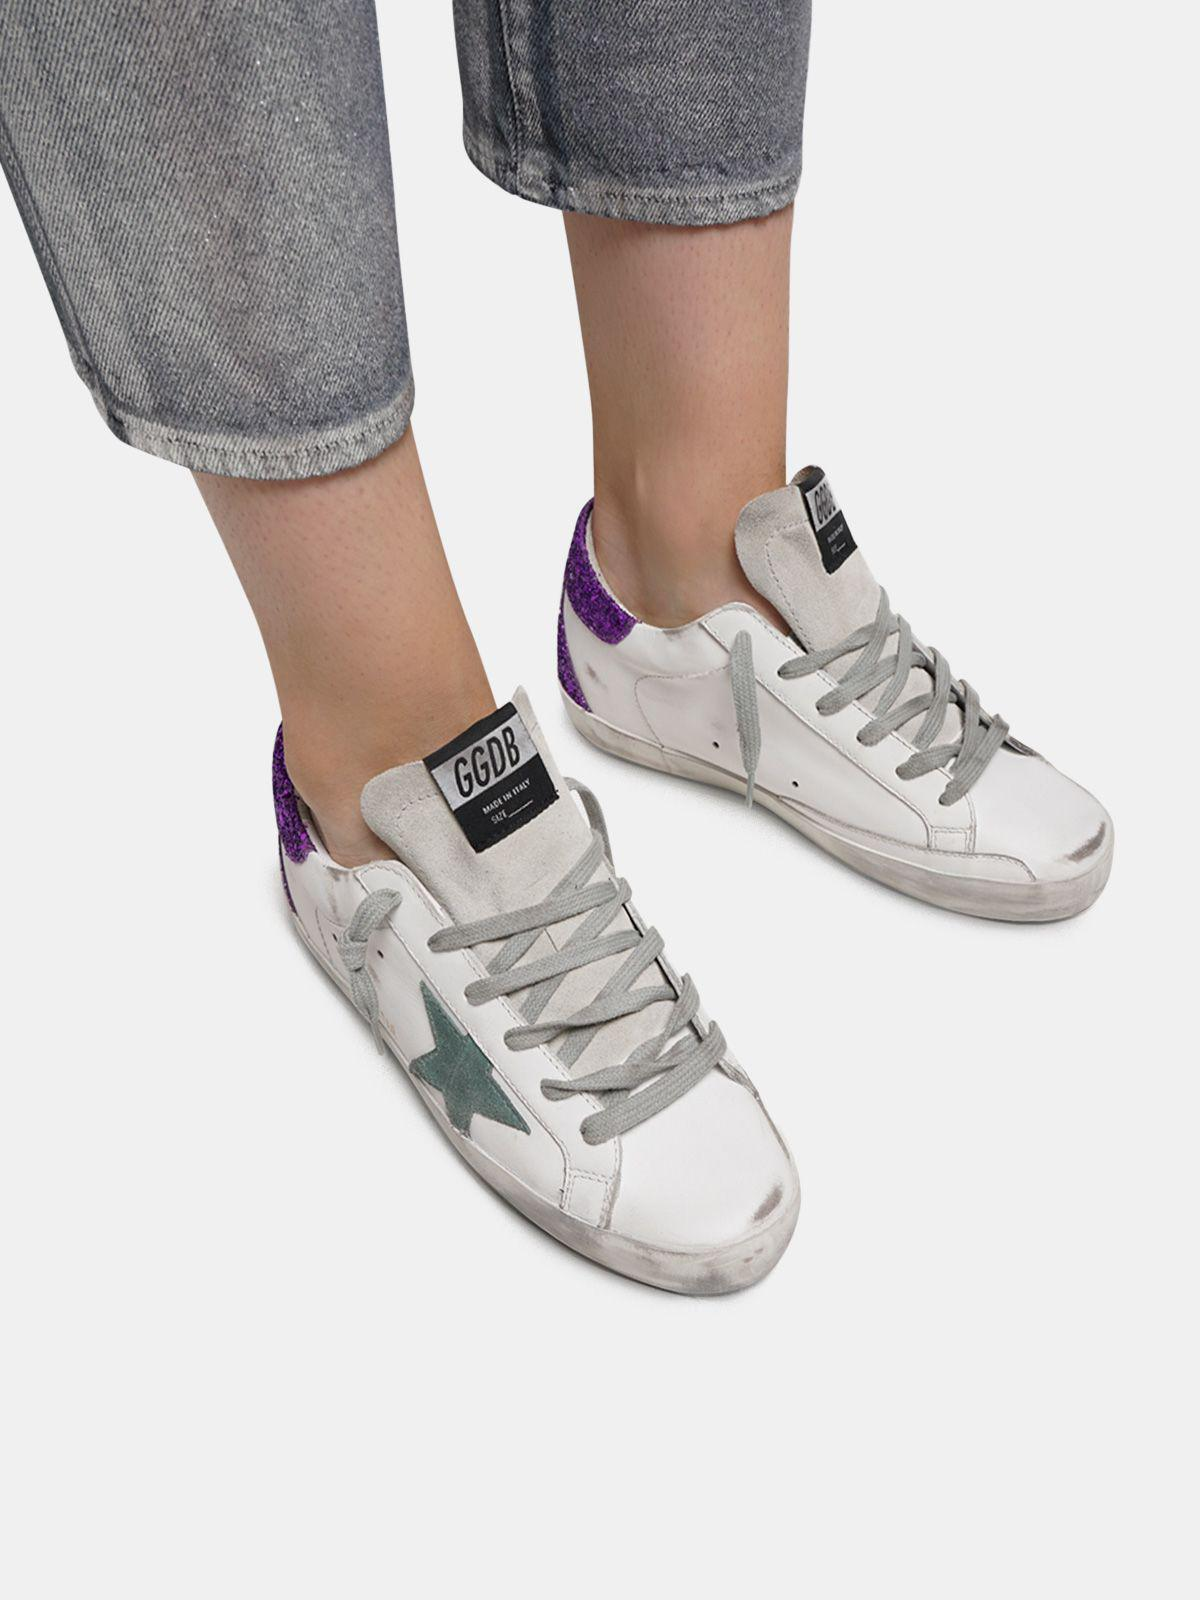 White Super-Star sneakers with glittery purple rear 4